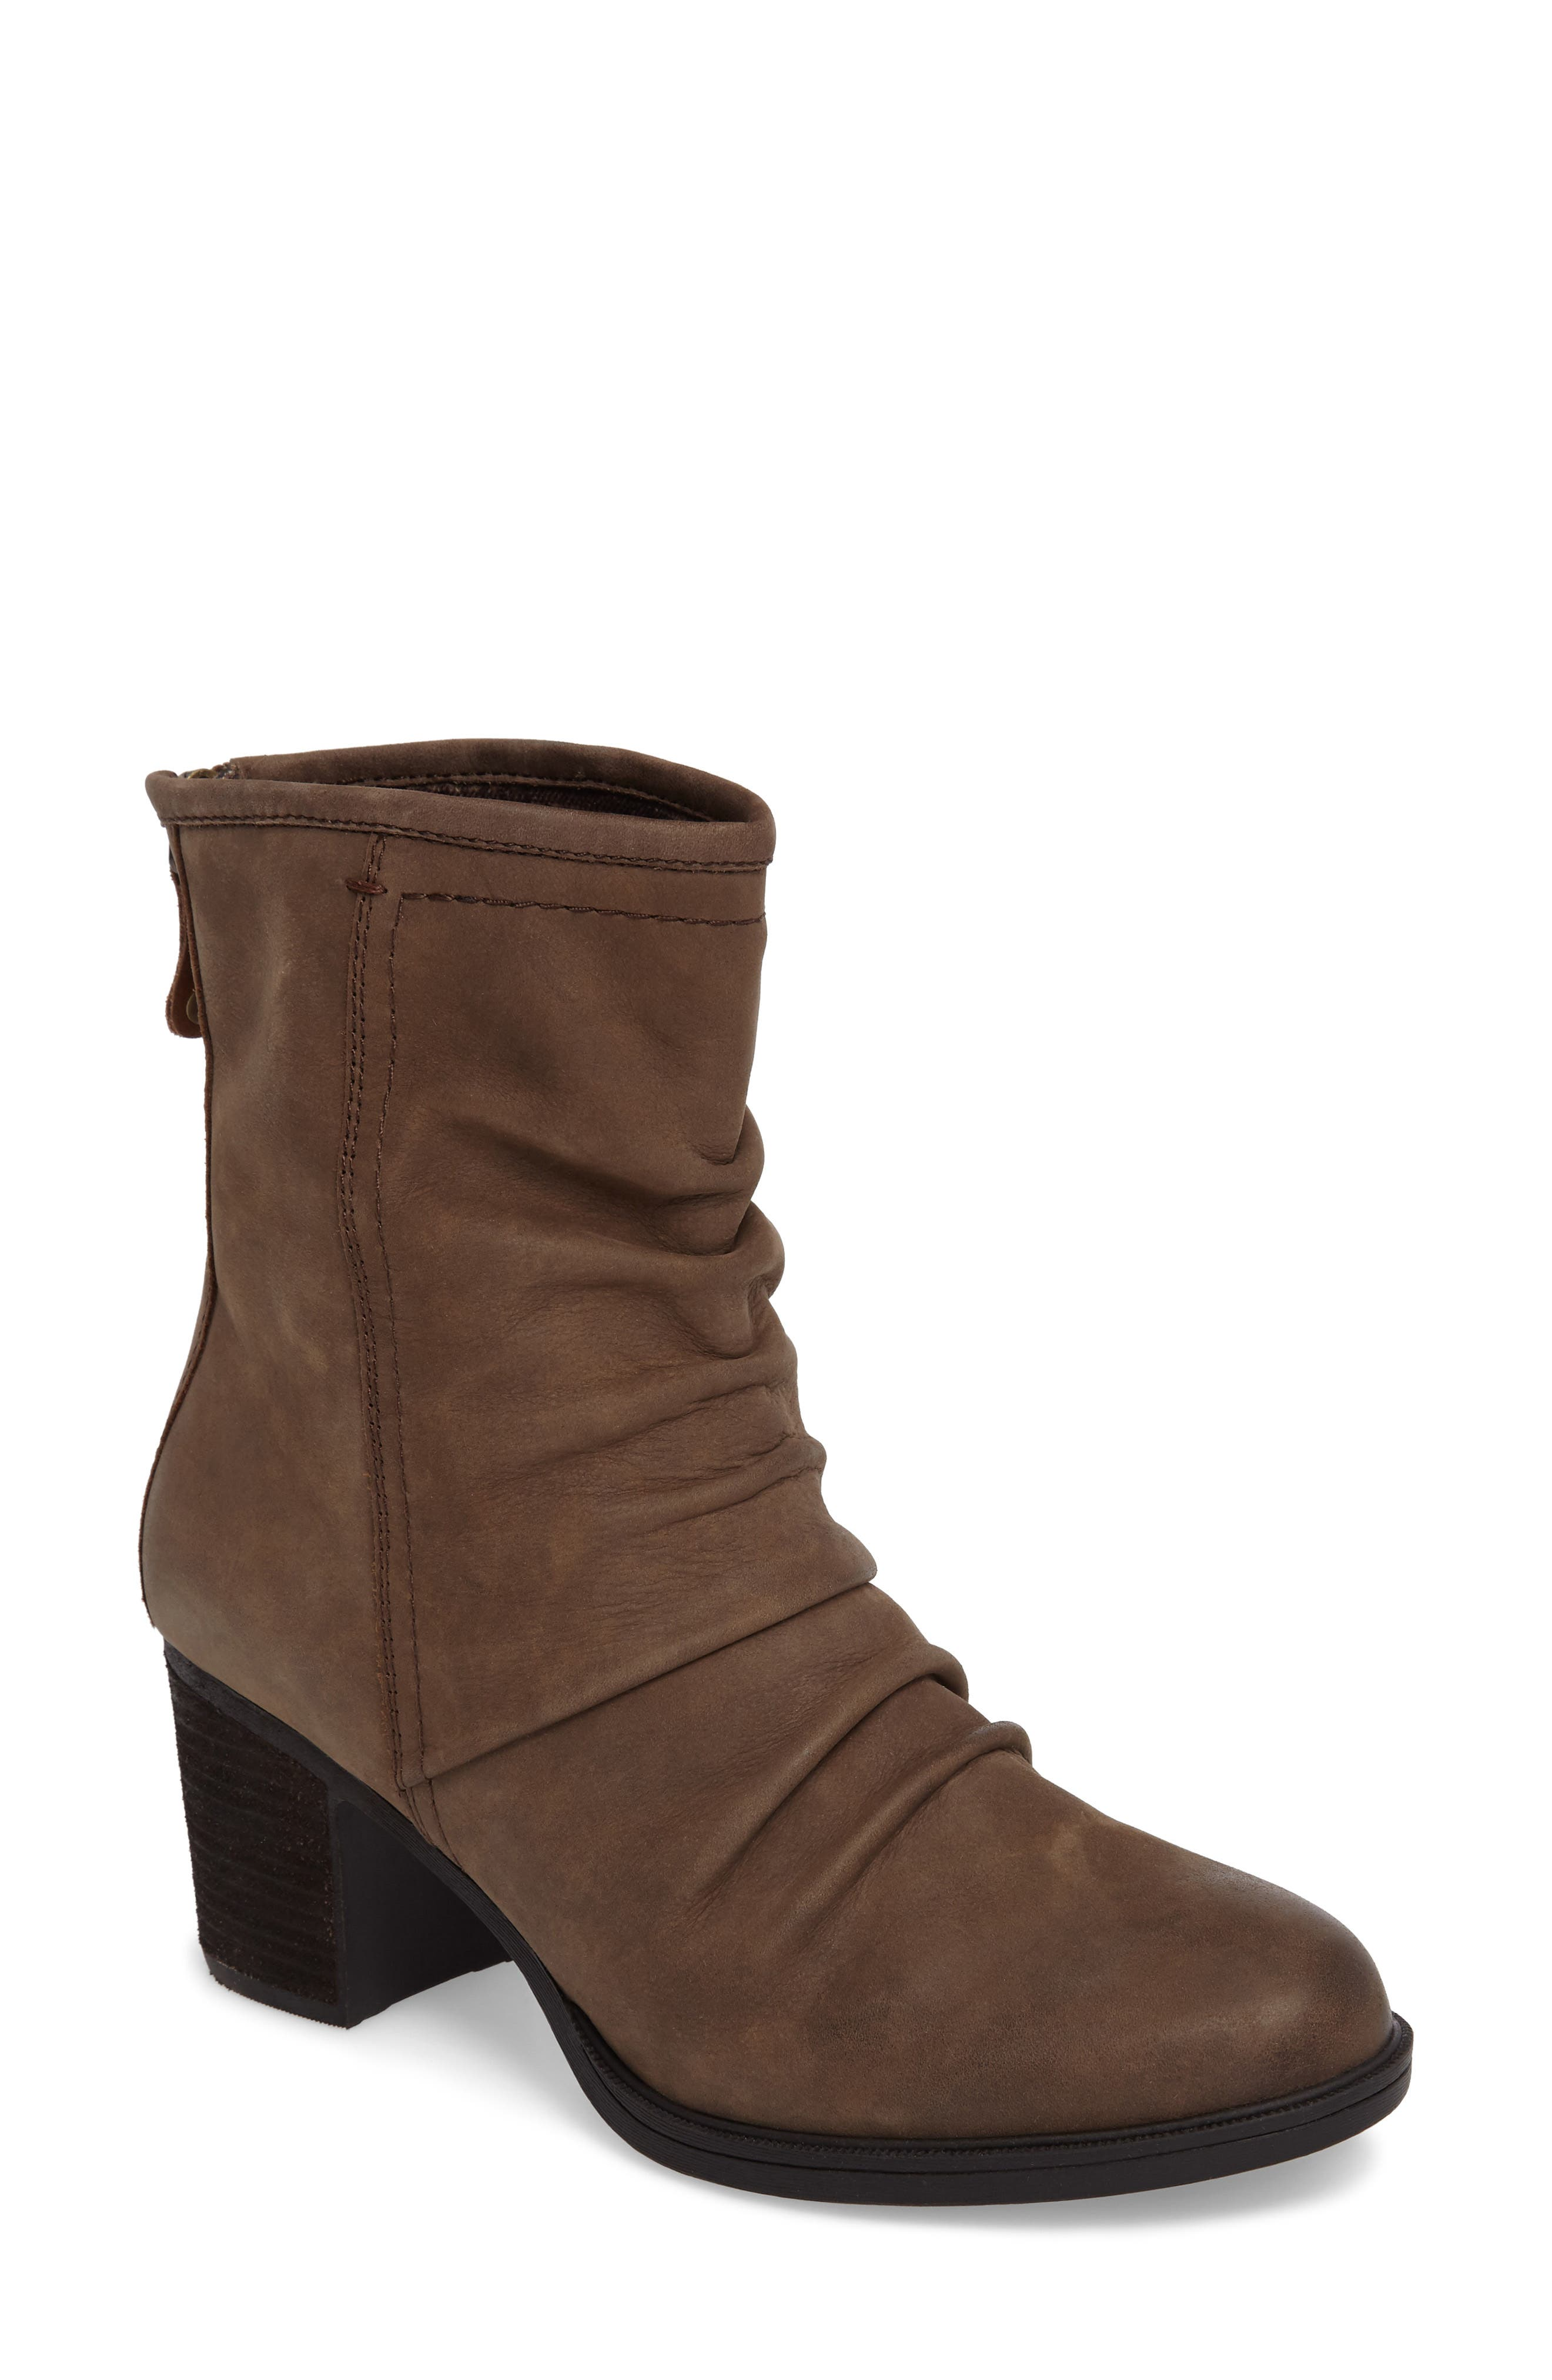 Alternate Image 1 Selected - Rockport Cobb Hill Natashya Slouchy Block Heel Bootie (Women)